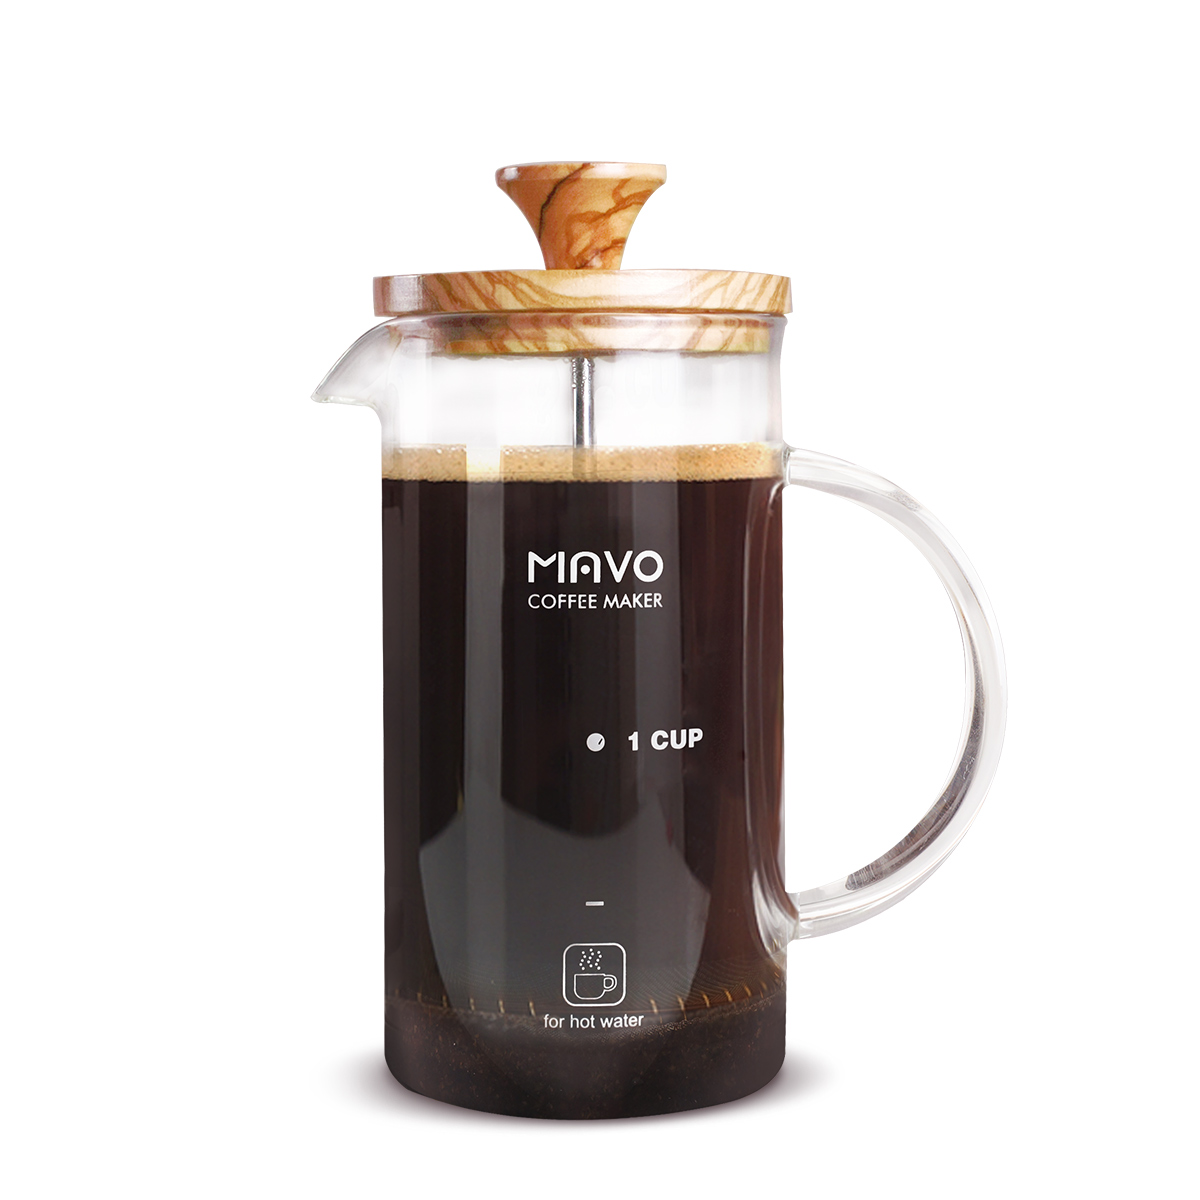 Olive wood coffee pot  glass French pot Home coffee machine French filter pot Heat resistant Tea maker Olive wood coffee pot  glass French pot Home coffee machine French filter pot Heat resistant Tea maker